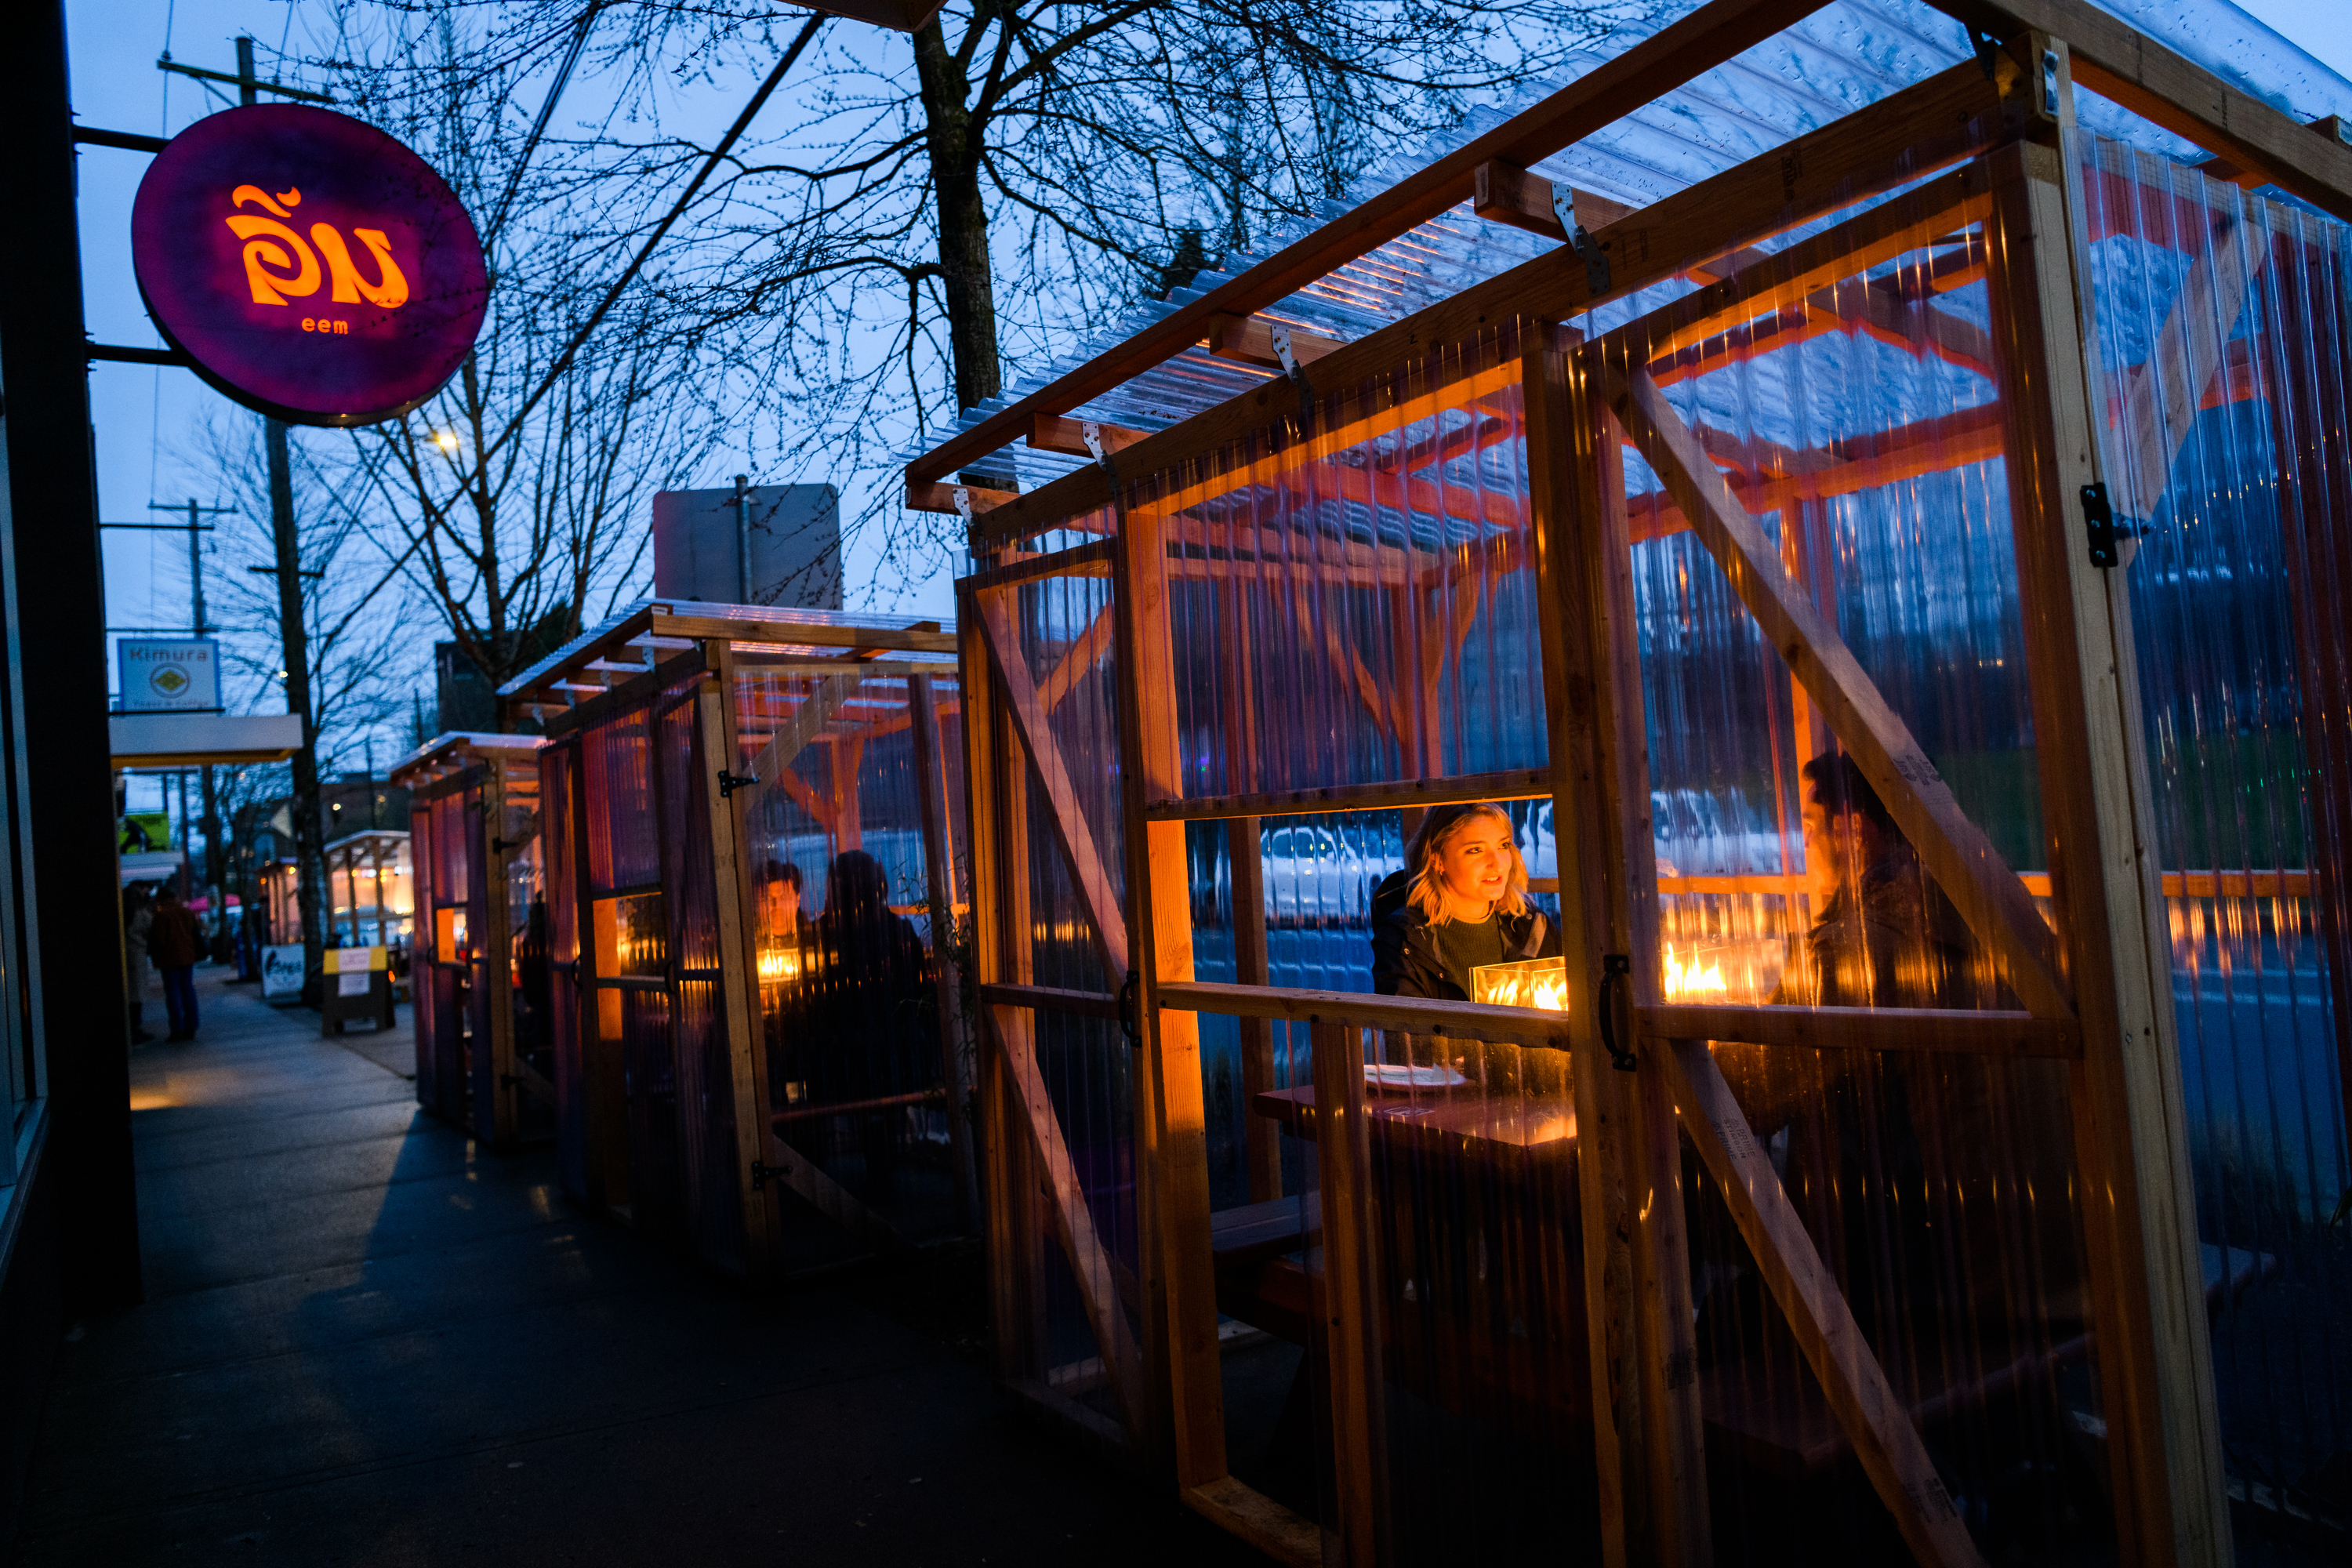 Along the sidewalk outside Eem, little greenhouse-style pods lined with plastic house single tables for customers to use.